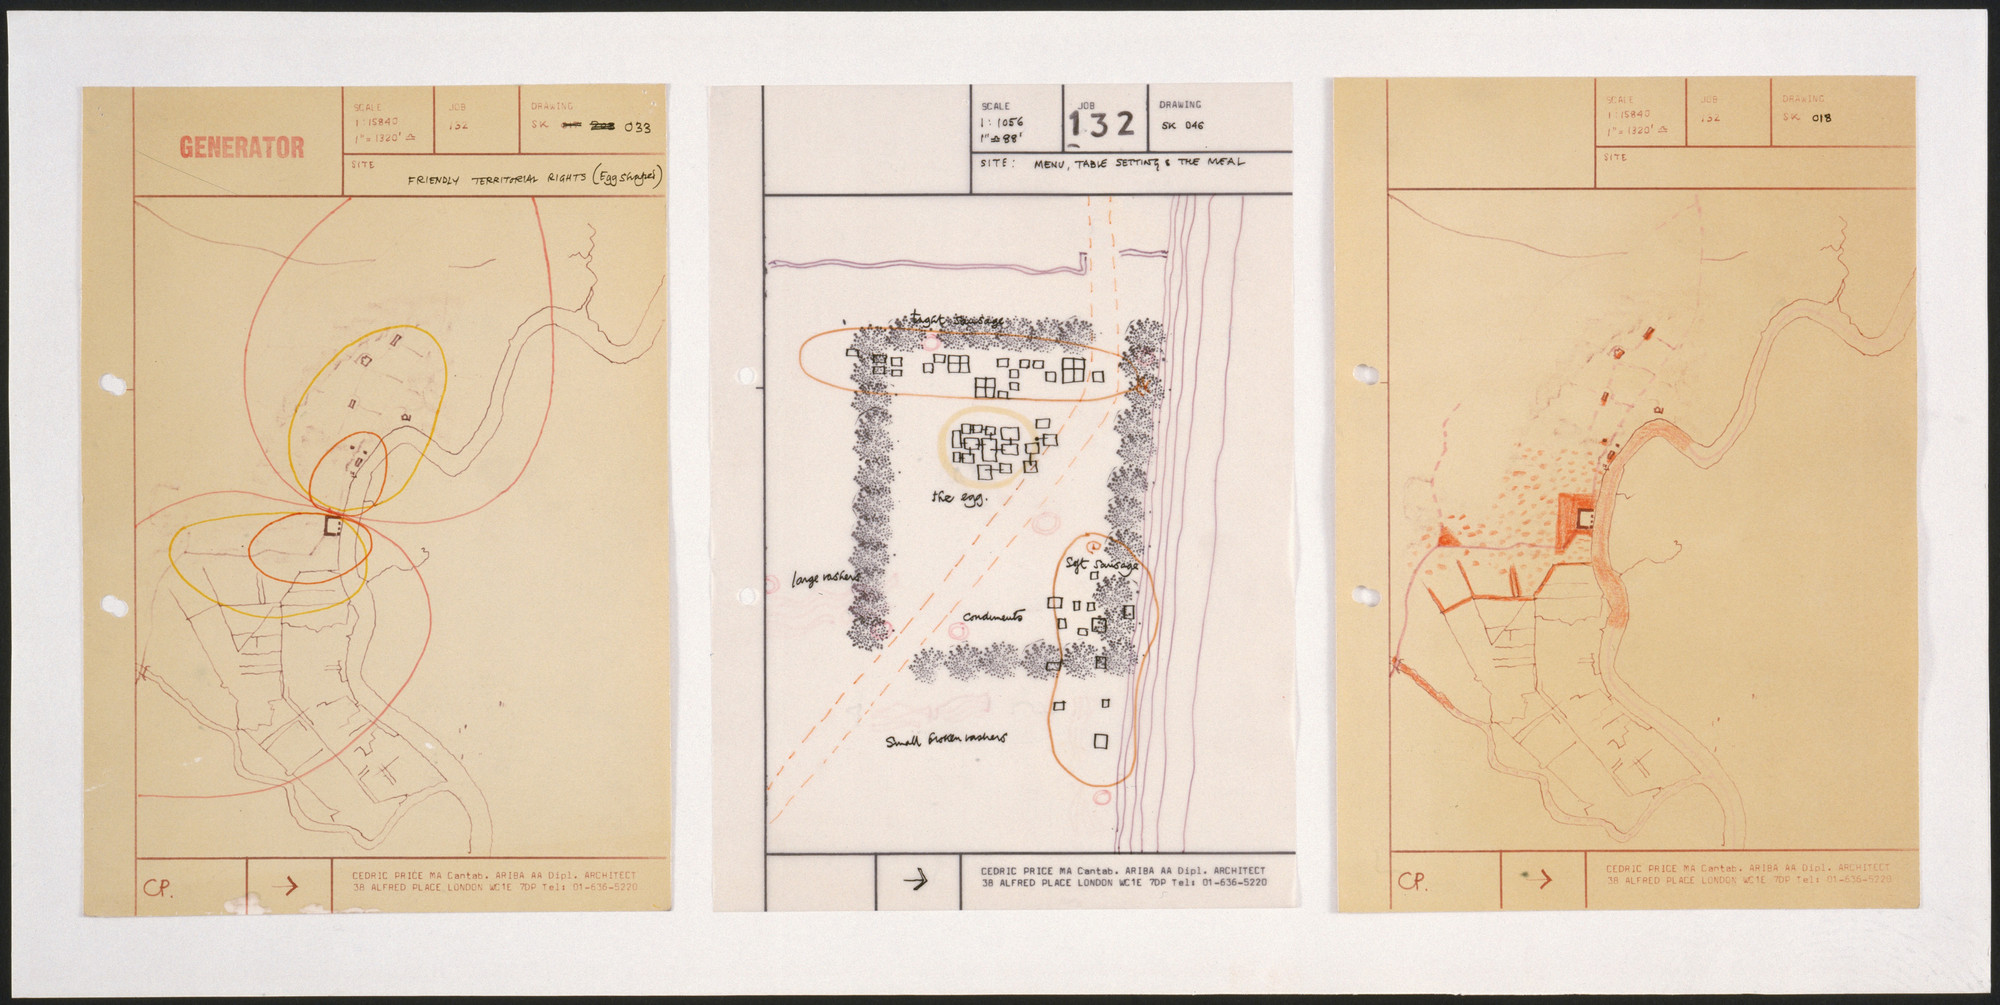 Cedric Price. Generator Project, White Oak, Florida, The Site Large and Small. 1978-80